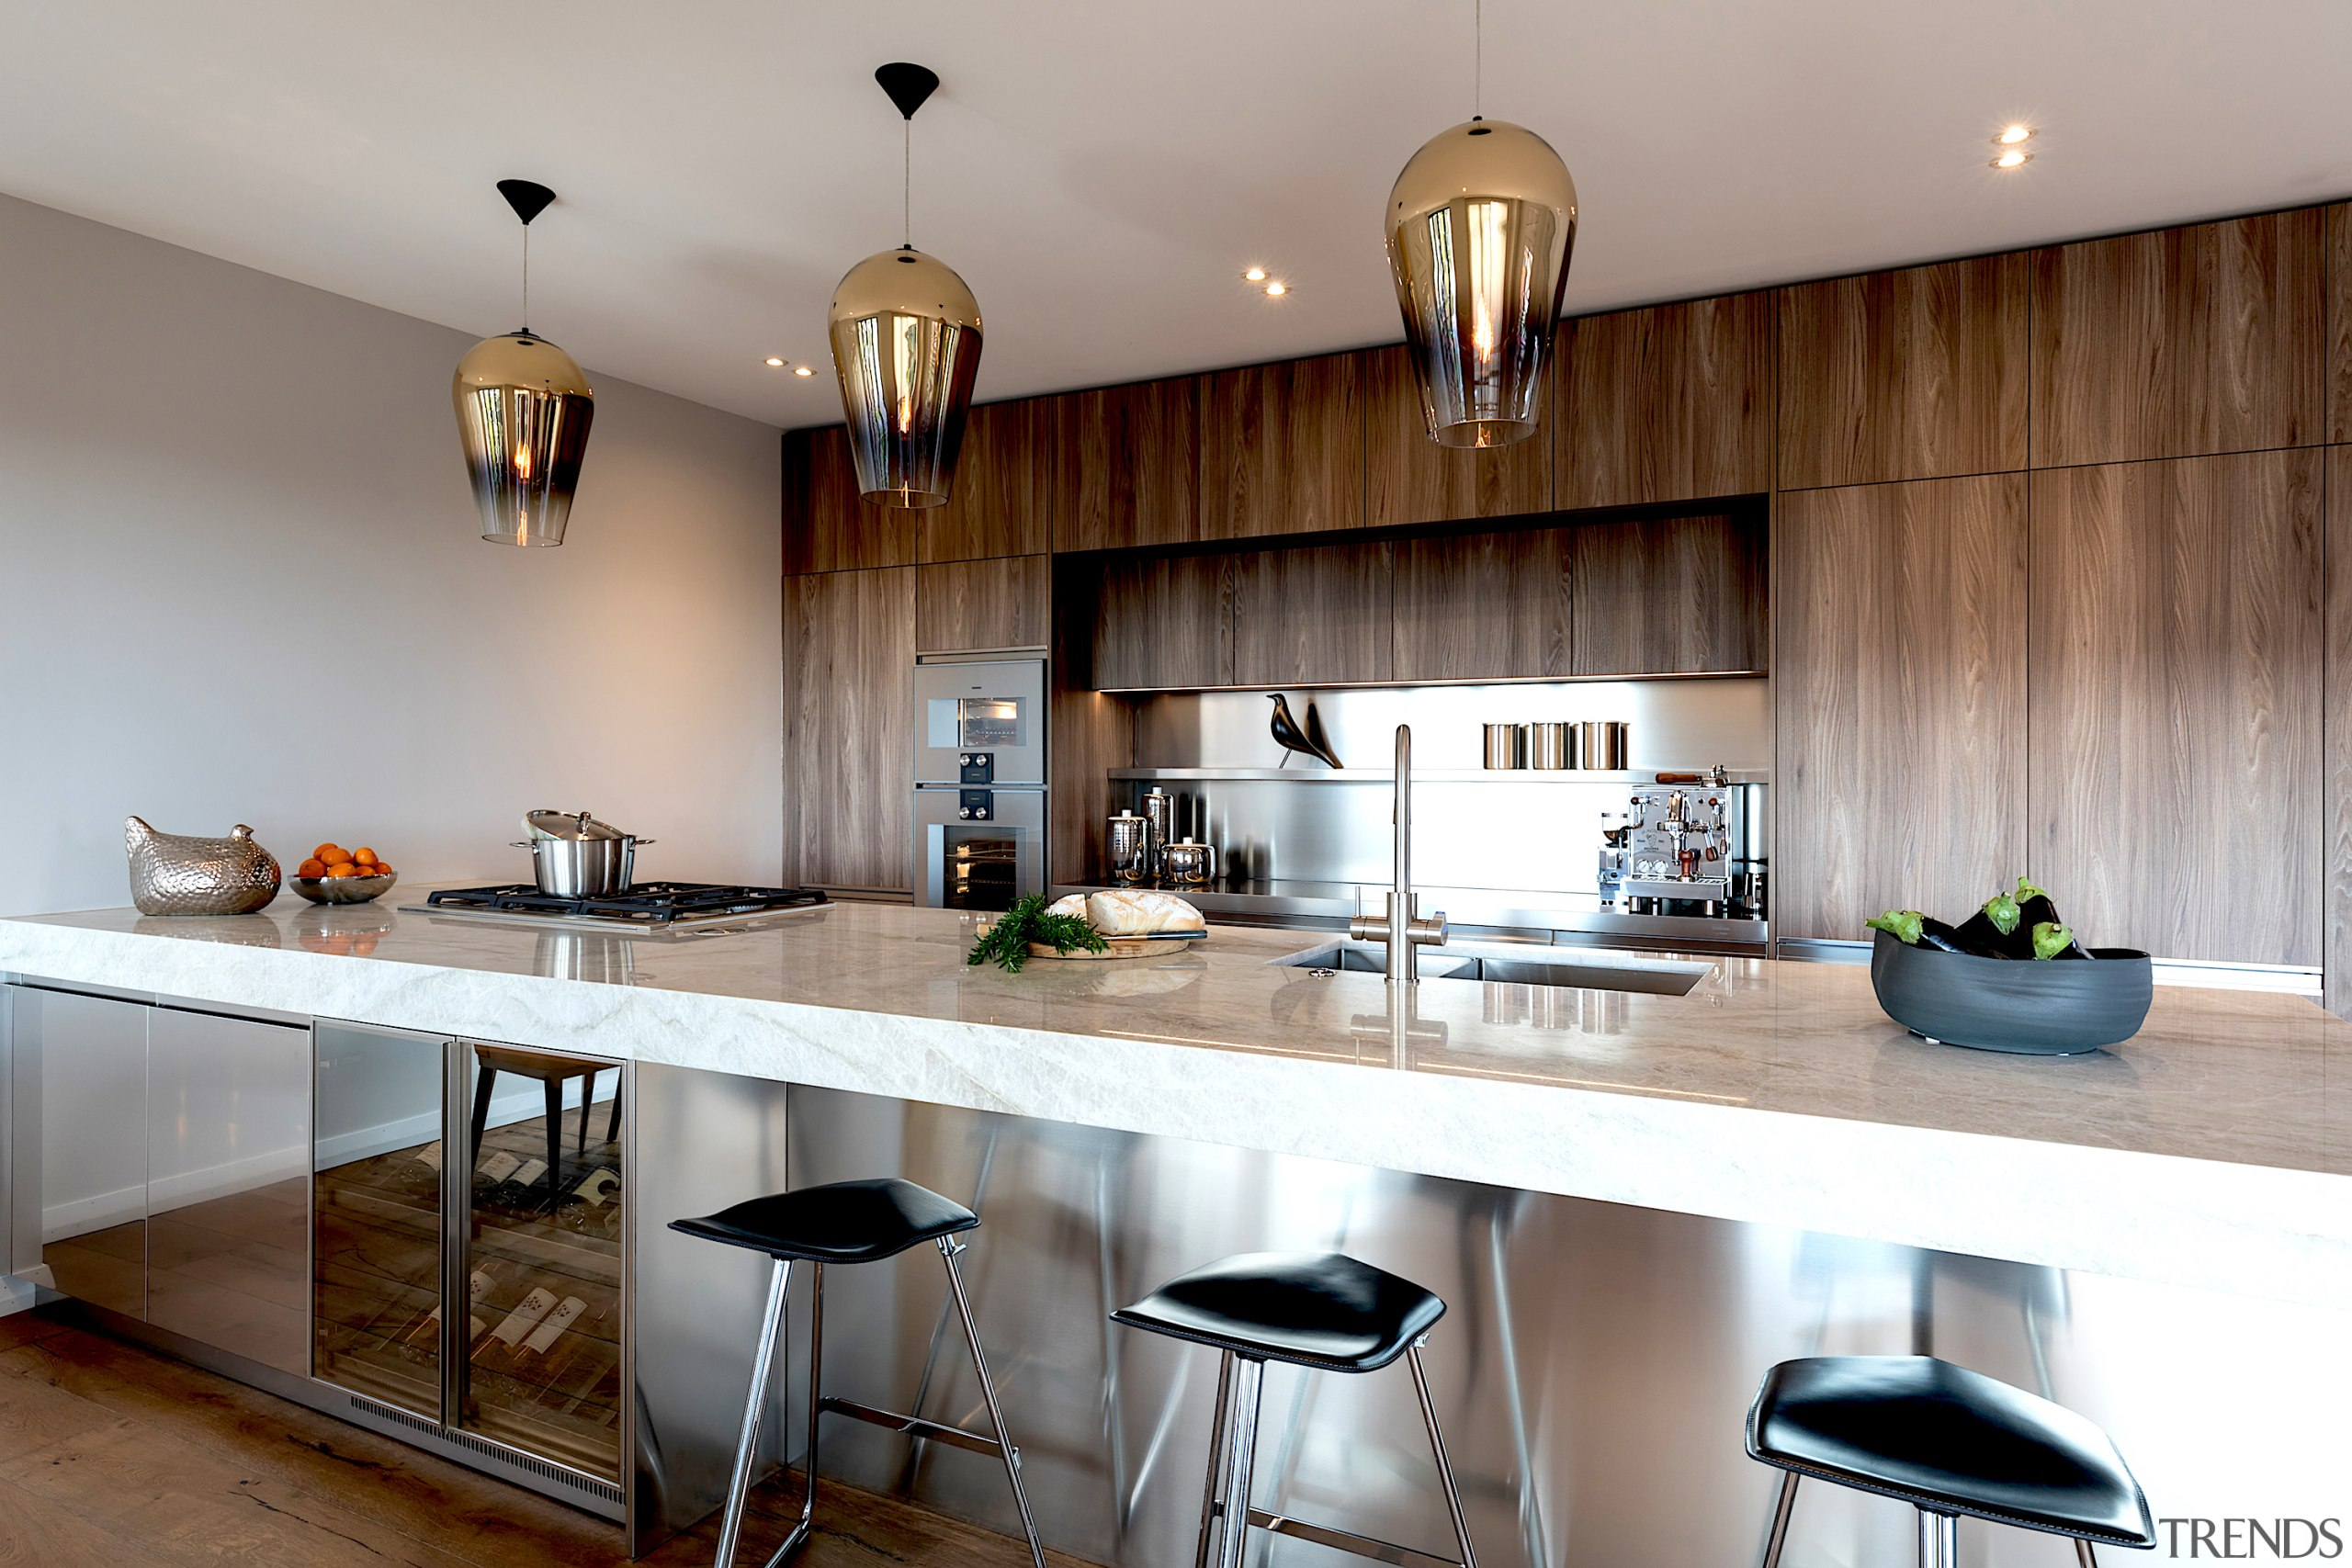 Social agenda – the long benchtop, actually 4.6m architecture, bar stool, building, cabinetry, ceiling, countertop, cuisine classique, floor, flooring, furniture, hardwood, home, house, interior design, kitchen, kitchen stove, material property, property, real estate, room, sink, stool, table, wood, gray